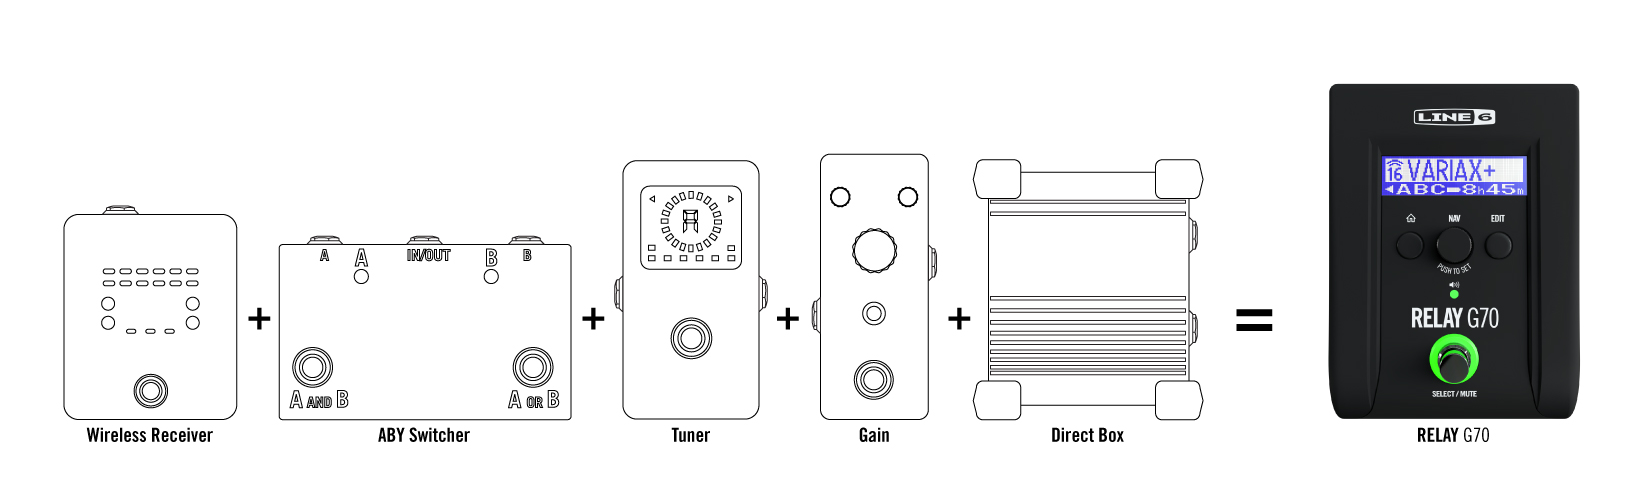 Line 6 Relay Guitar Wireless System G70 and G75 diagram illustrating five pedals in one